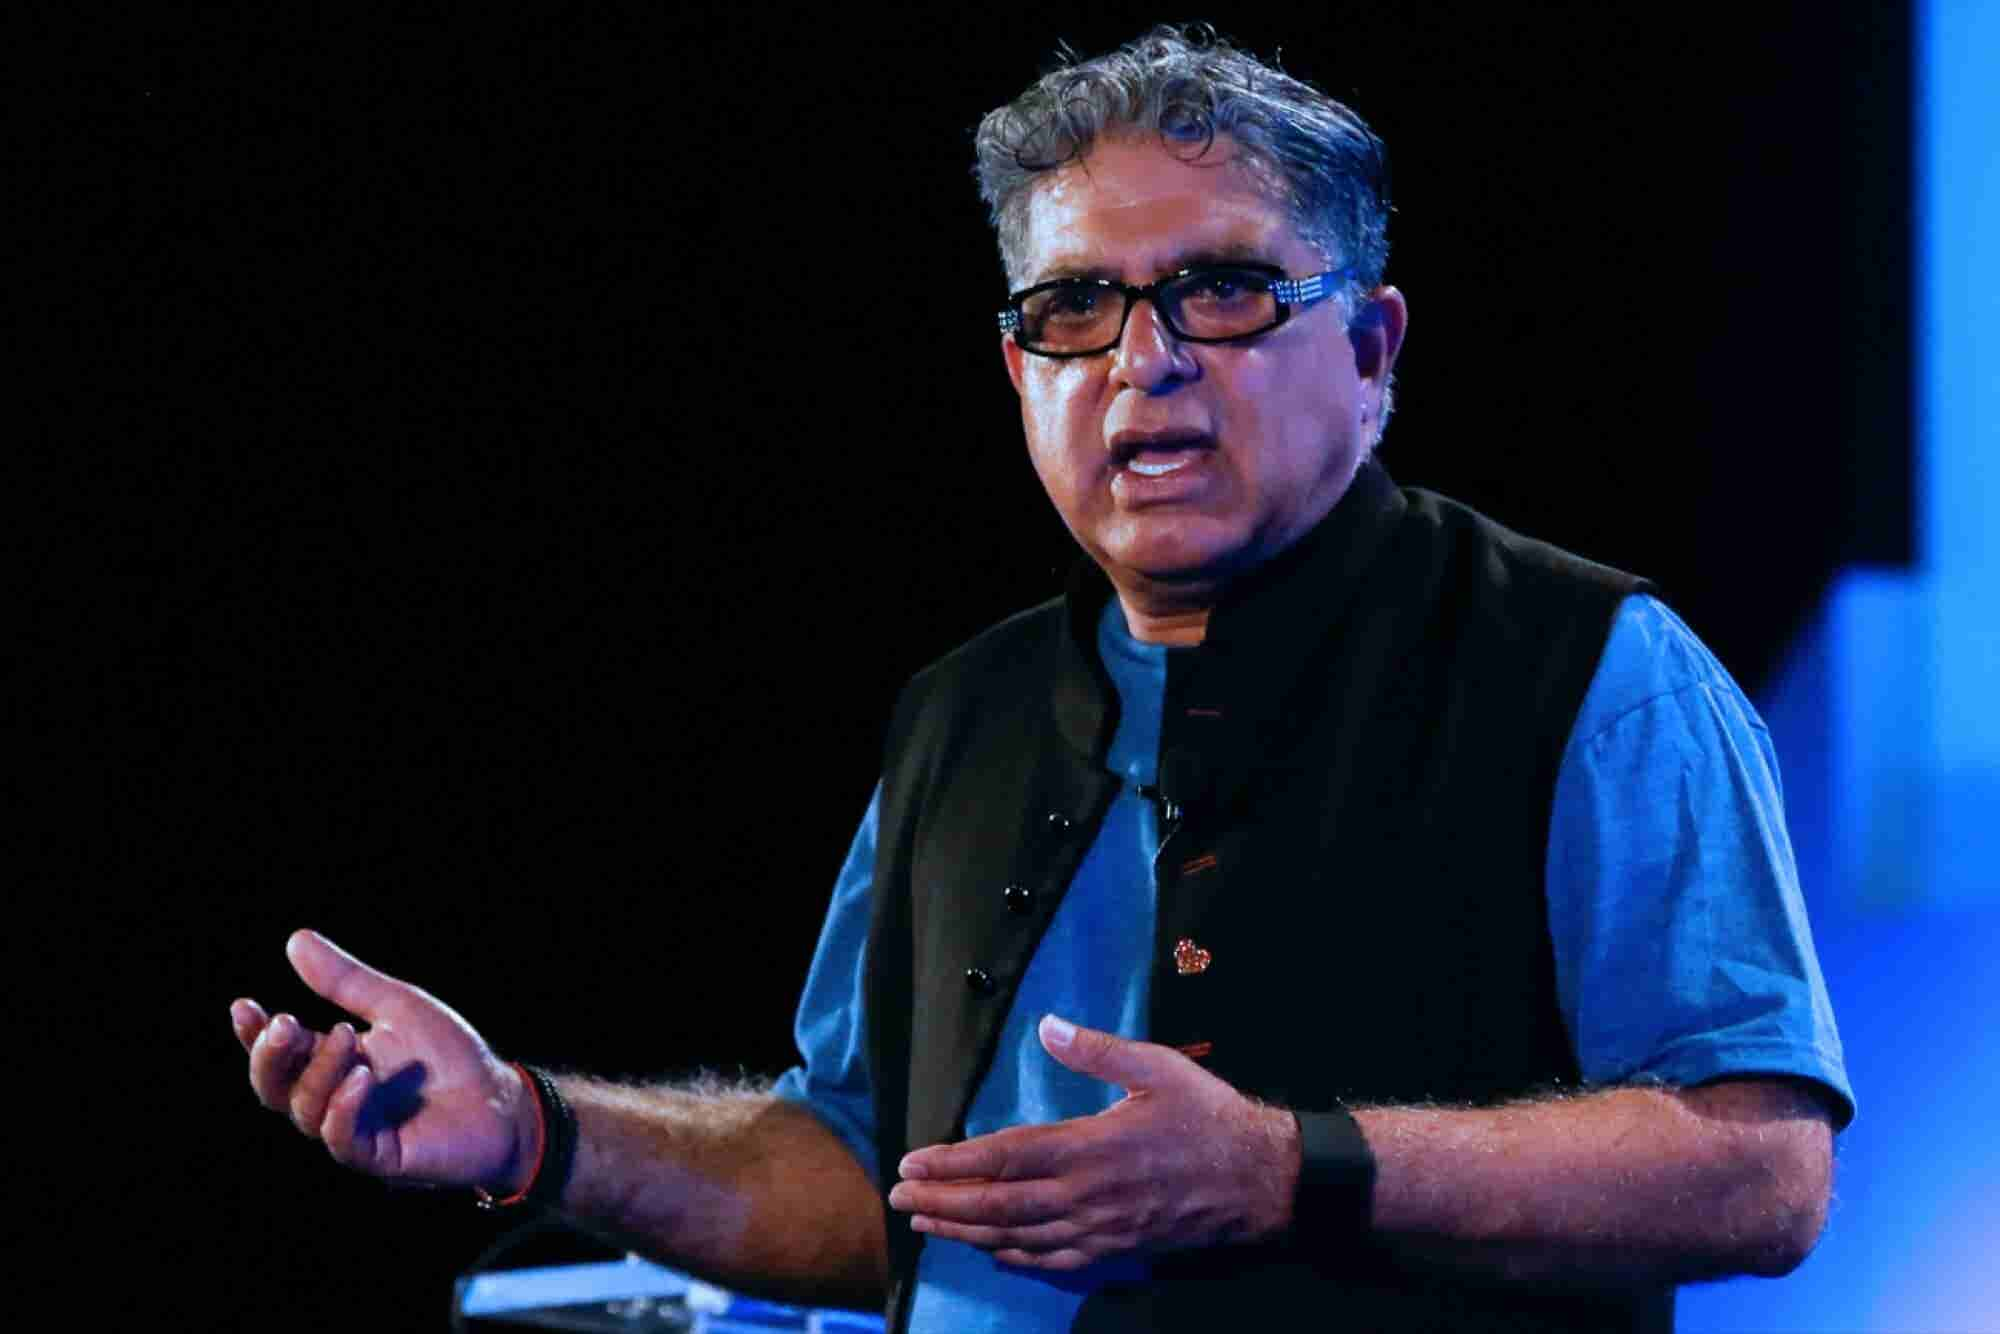 4 Key Lessons From My Time With Deepak Chopra